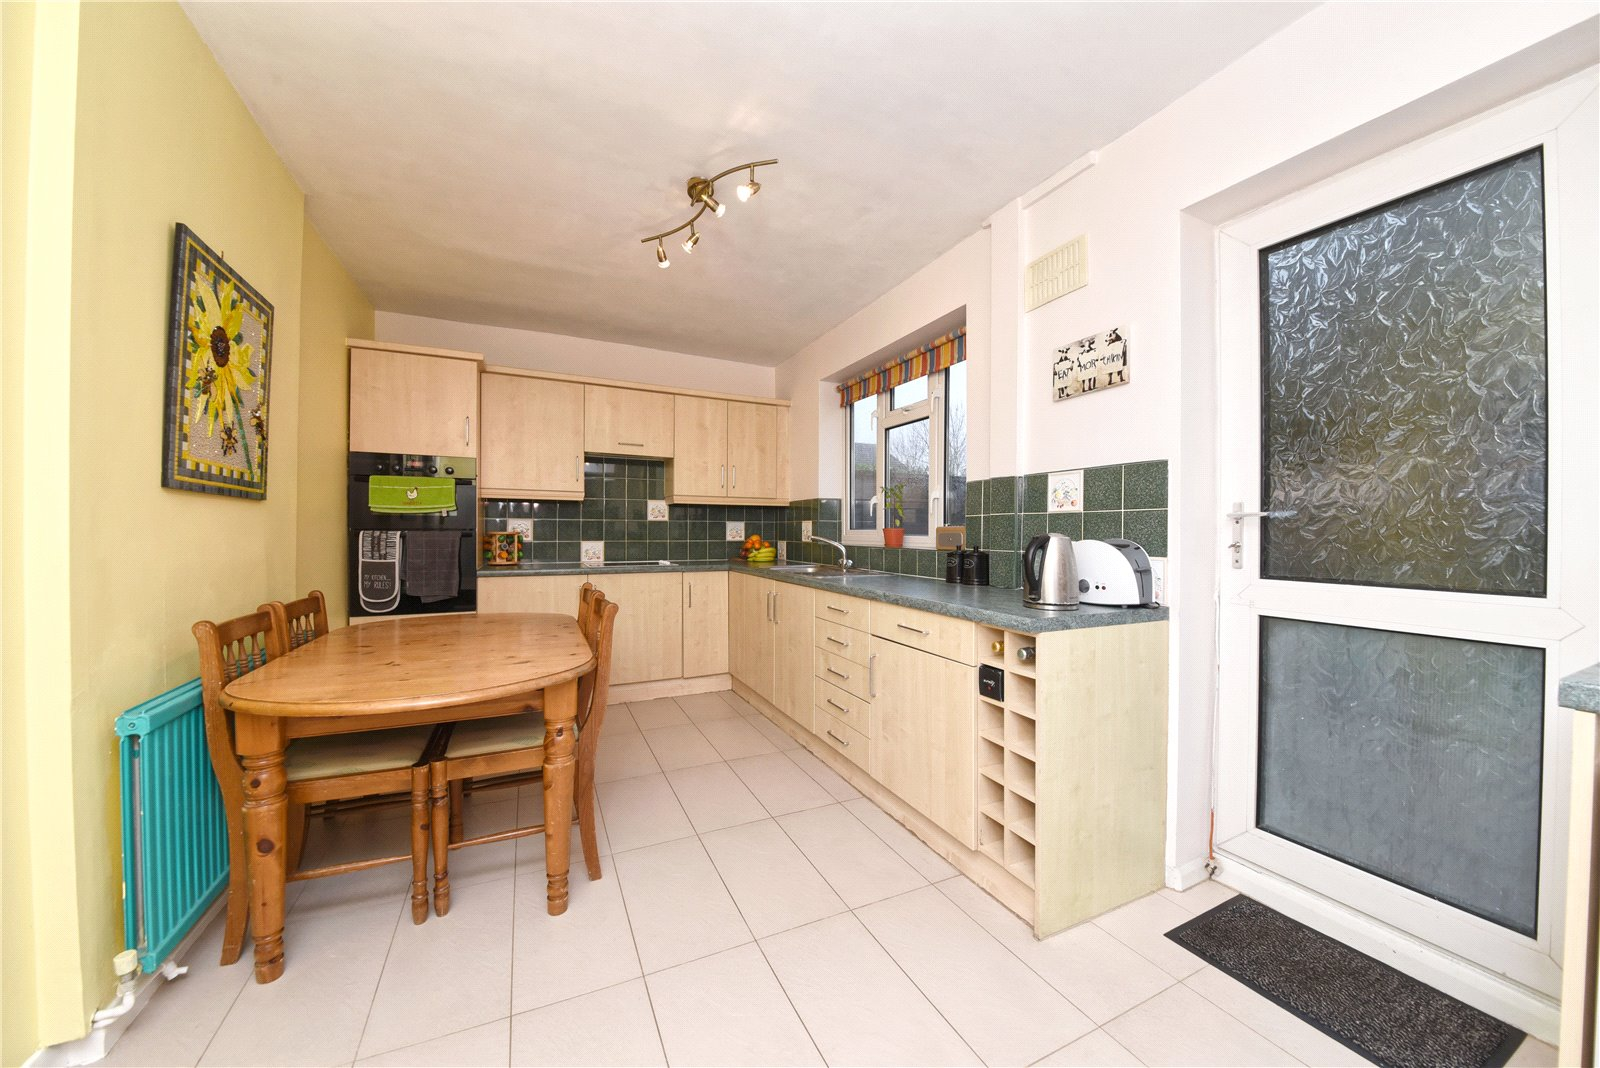 3 bed house for sale in Edgware, HA8 8XT 1